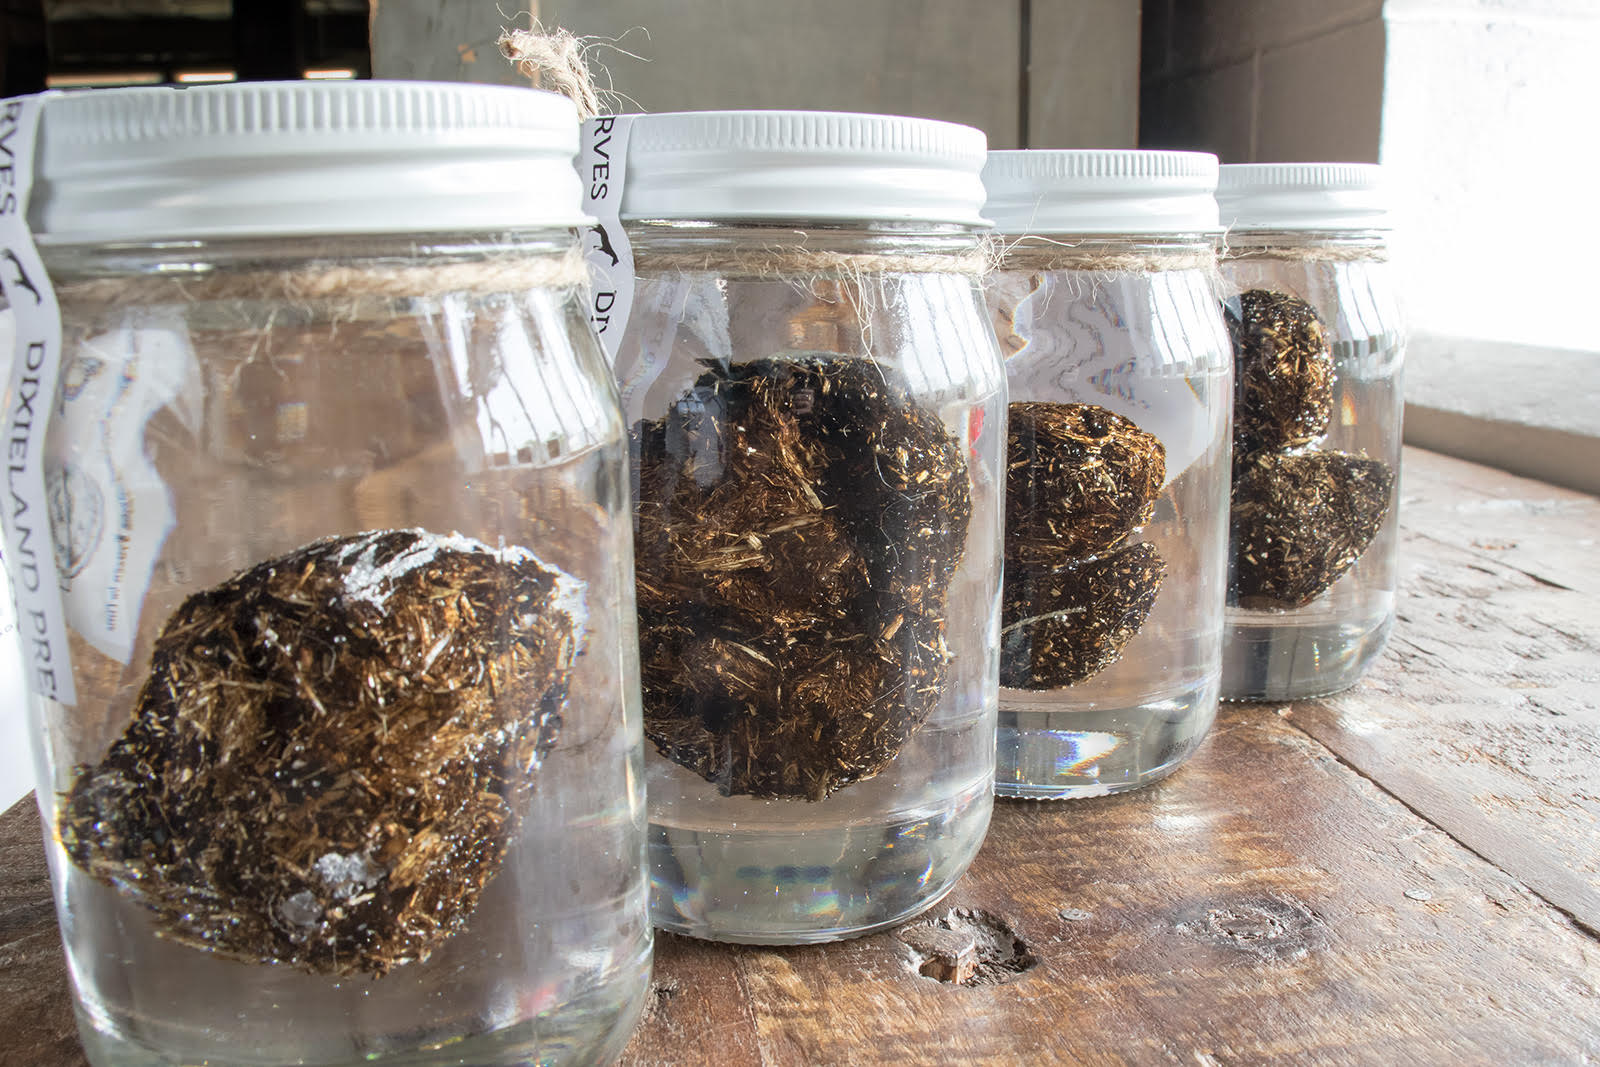 PRESERVED KENTUCKY DERBY HORSE TURDS!